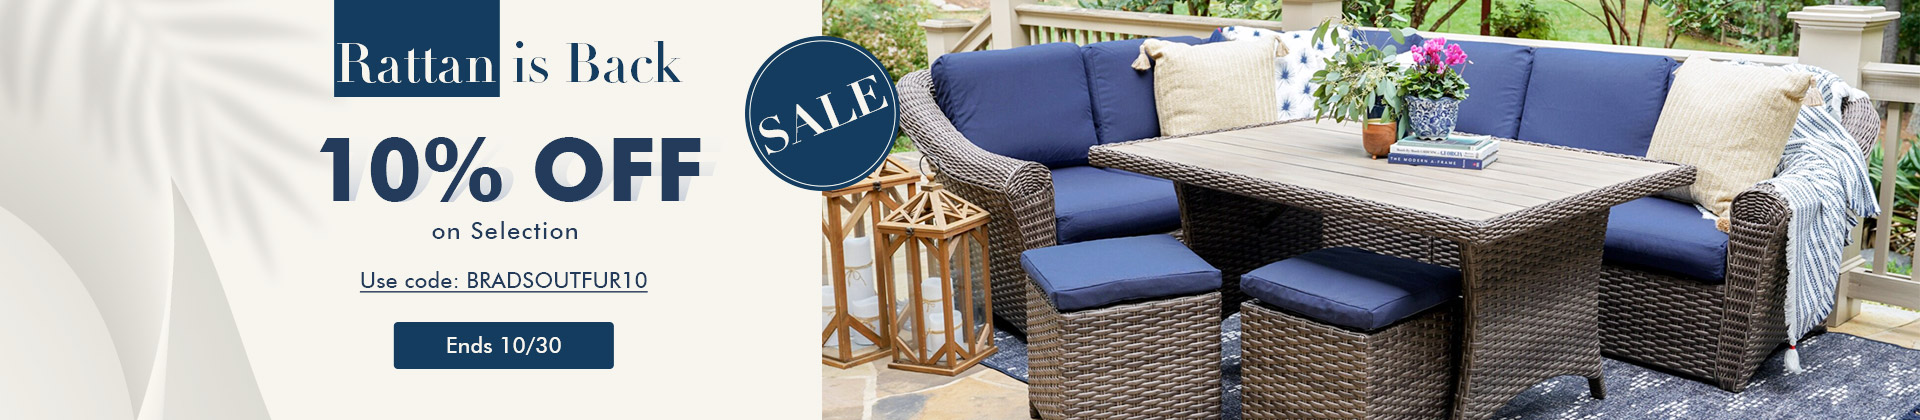 COSTWAY, OUTDOOR FURNITURE DEAL, PROMOTION